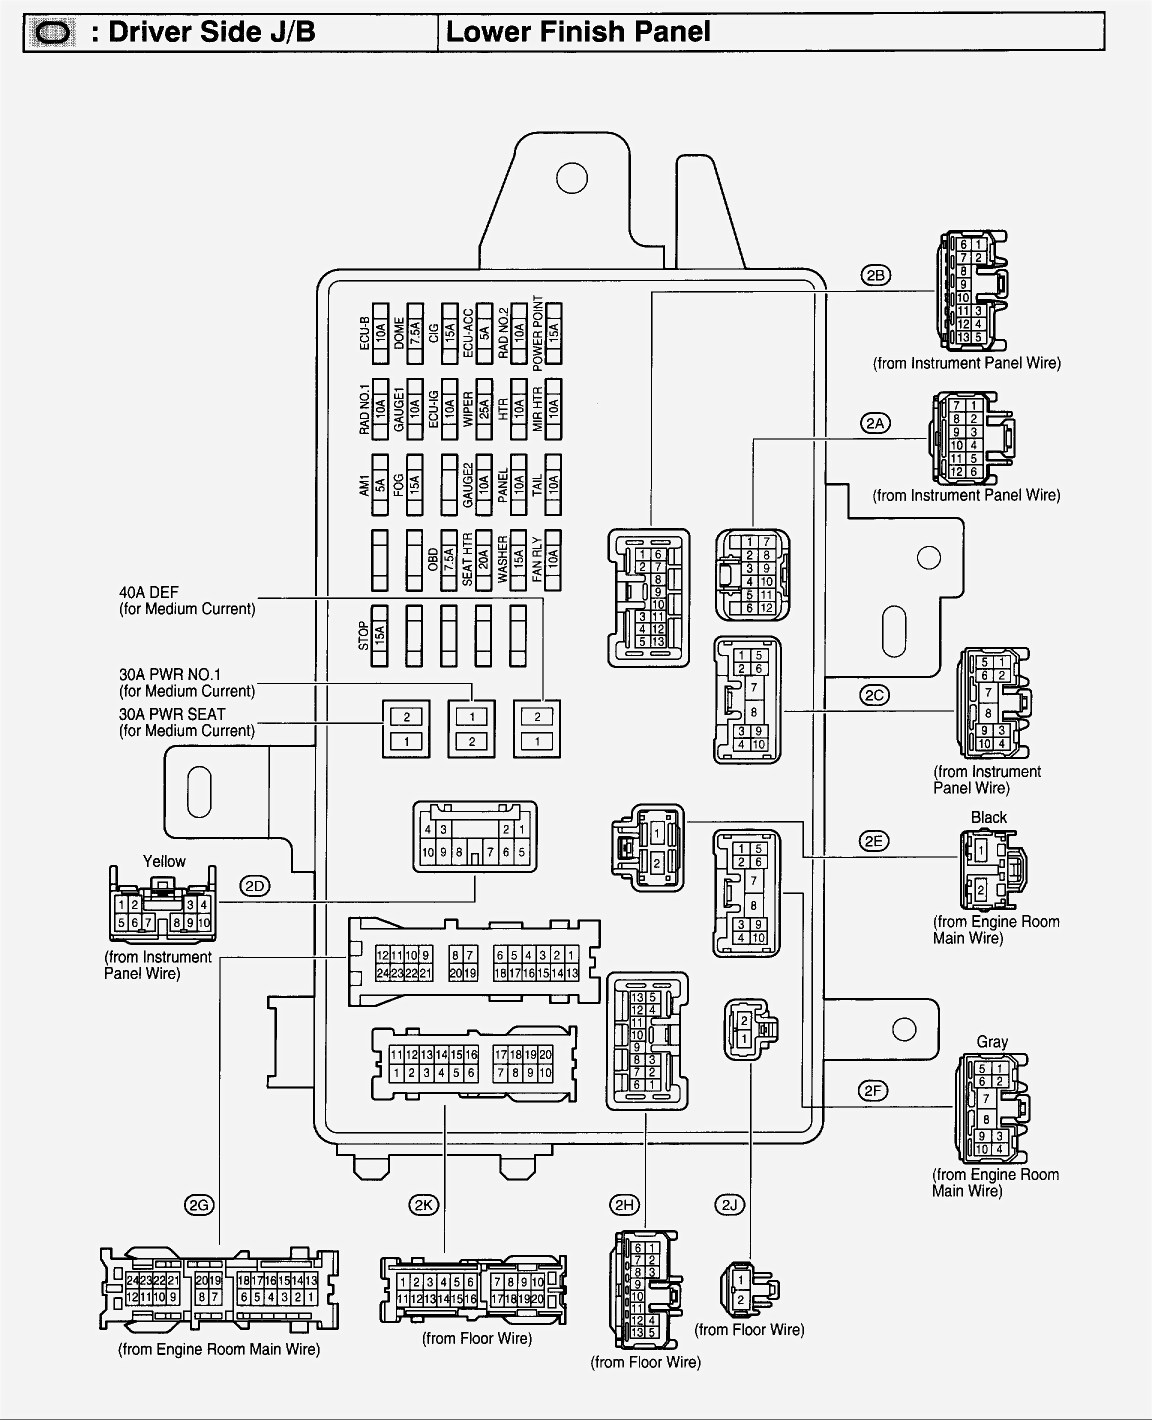 2011 camry engine compartment diagram yx 9120  toyota camry le engine diagram of 2012 schematic wiring  yx 9120  toyota camry le engine diagram